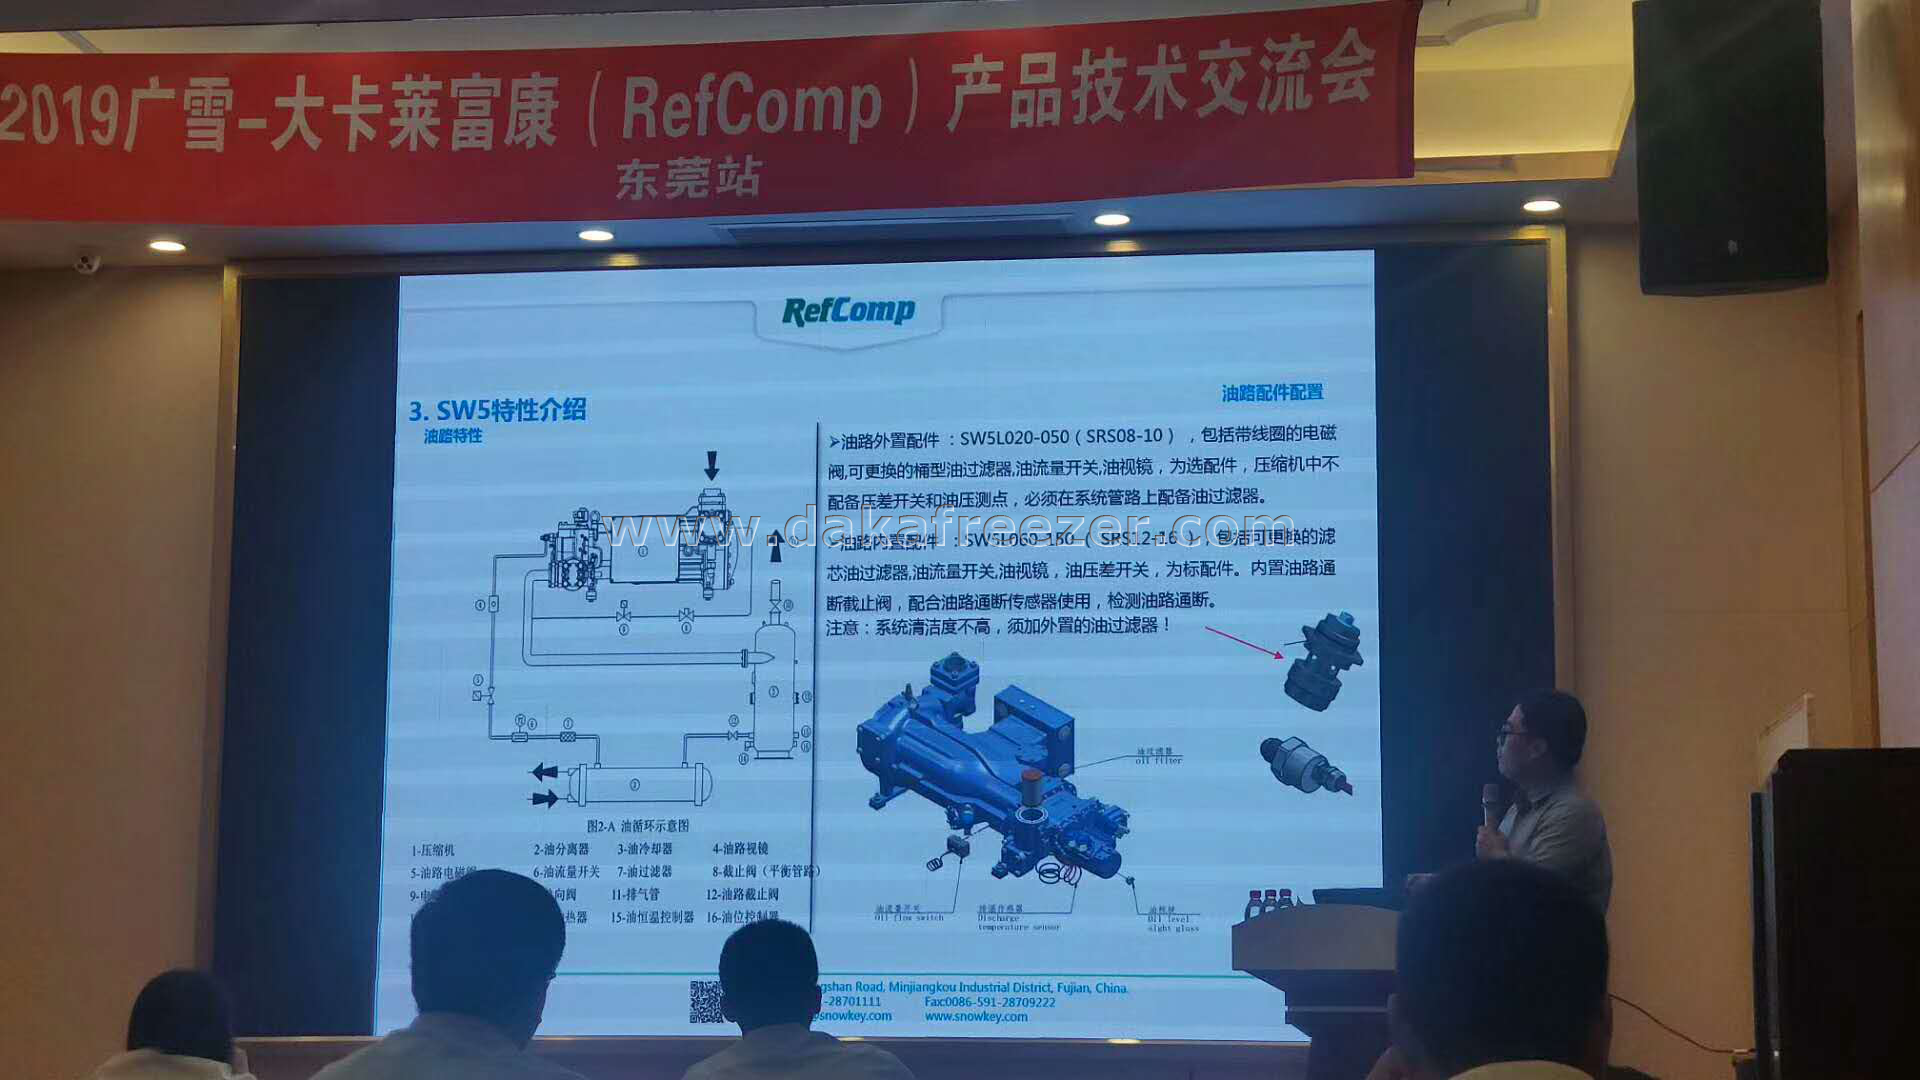 2019 Guangxue-Daika- RefComp compressor Product Technology Exchange Conference - Conference Report